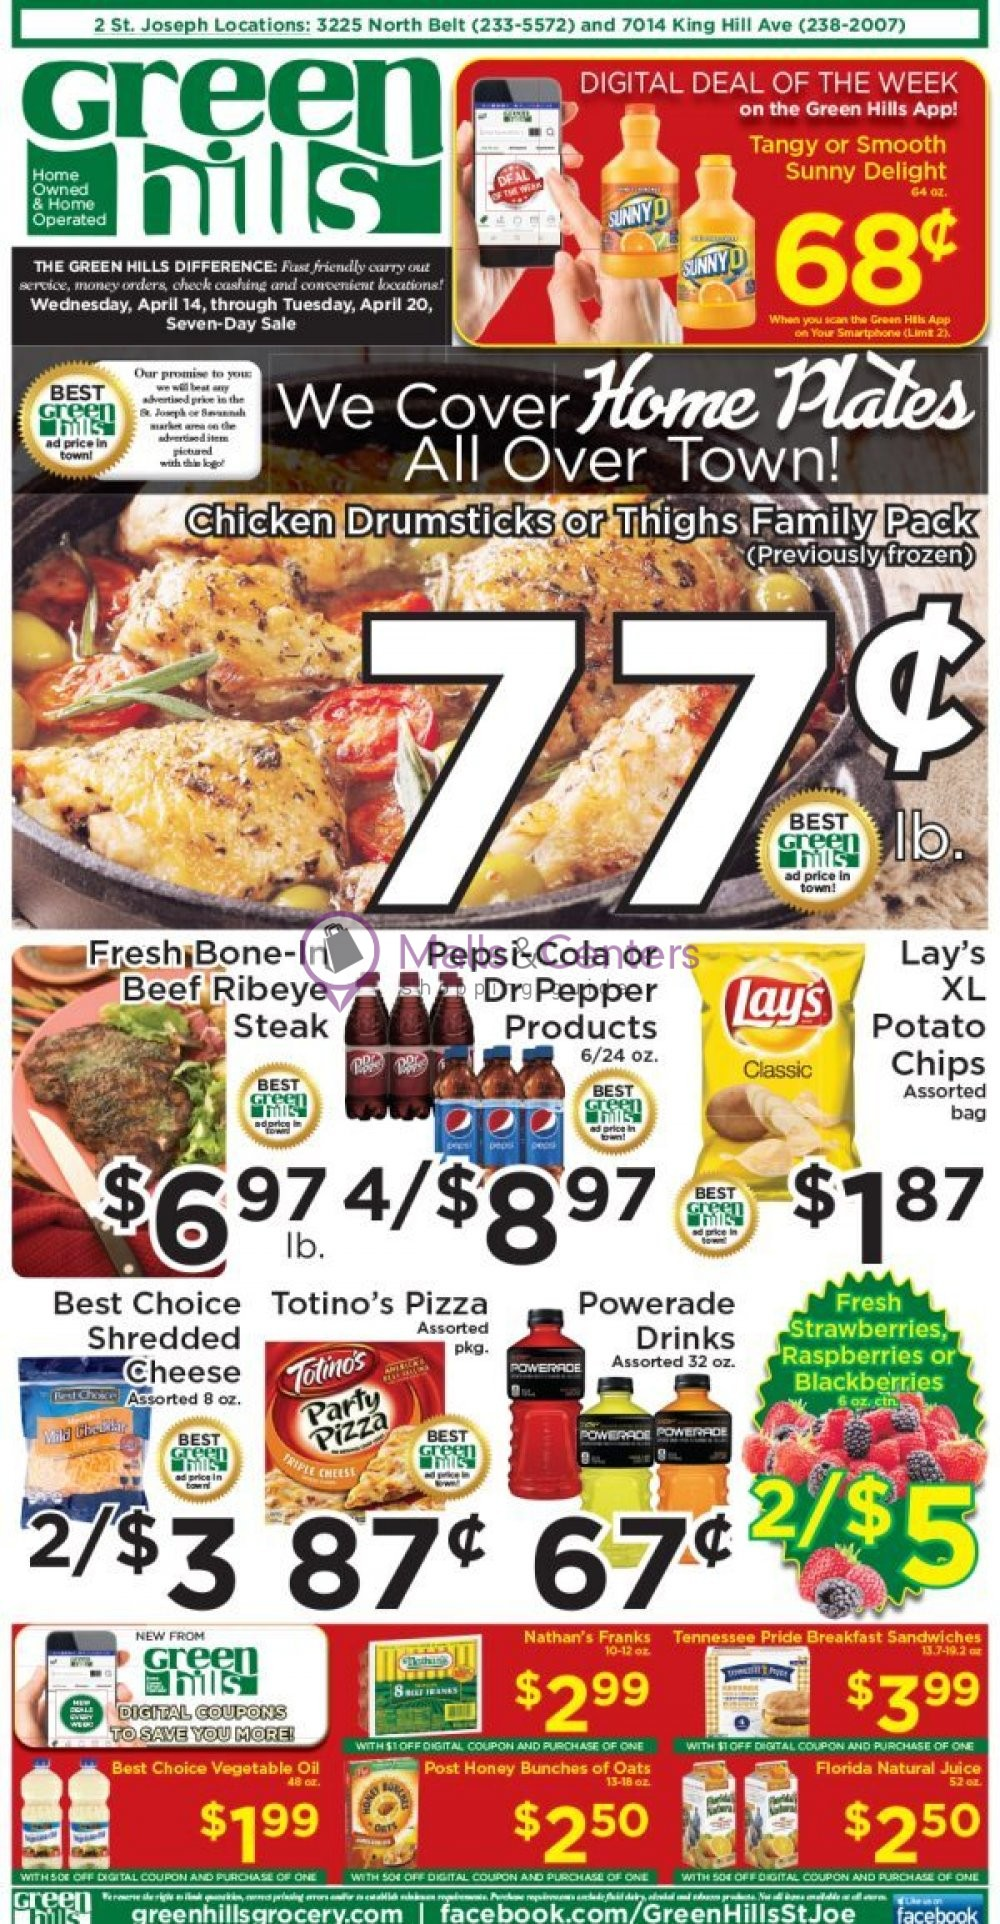 weekly ads Green Hills Grocery - page 1 - mallscenters.com